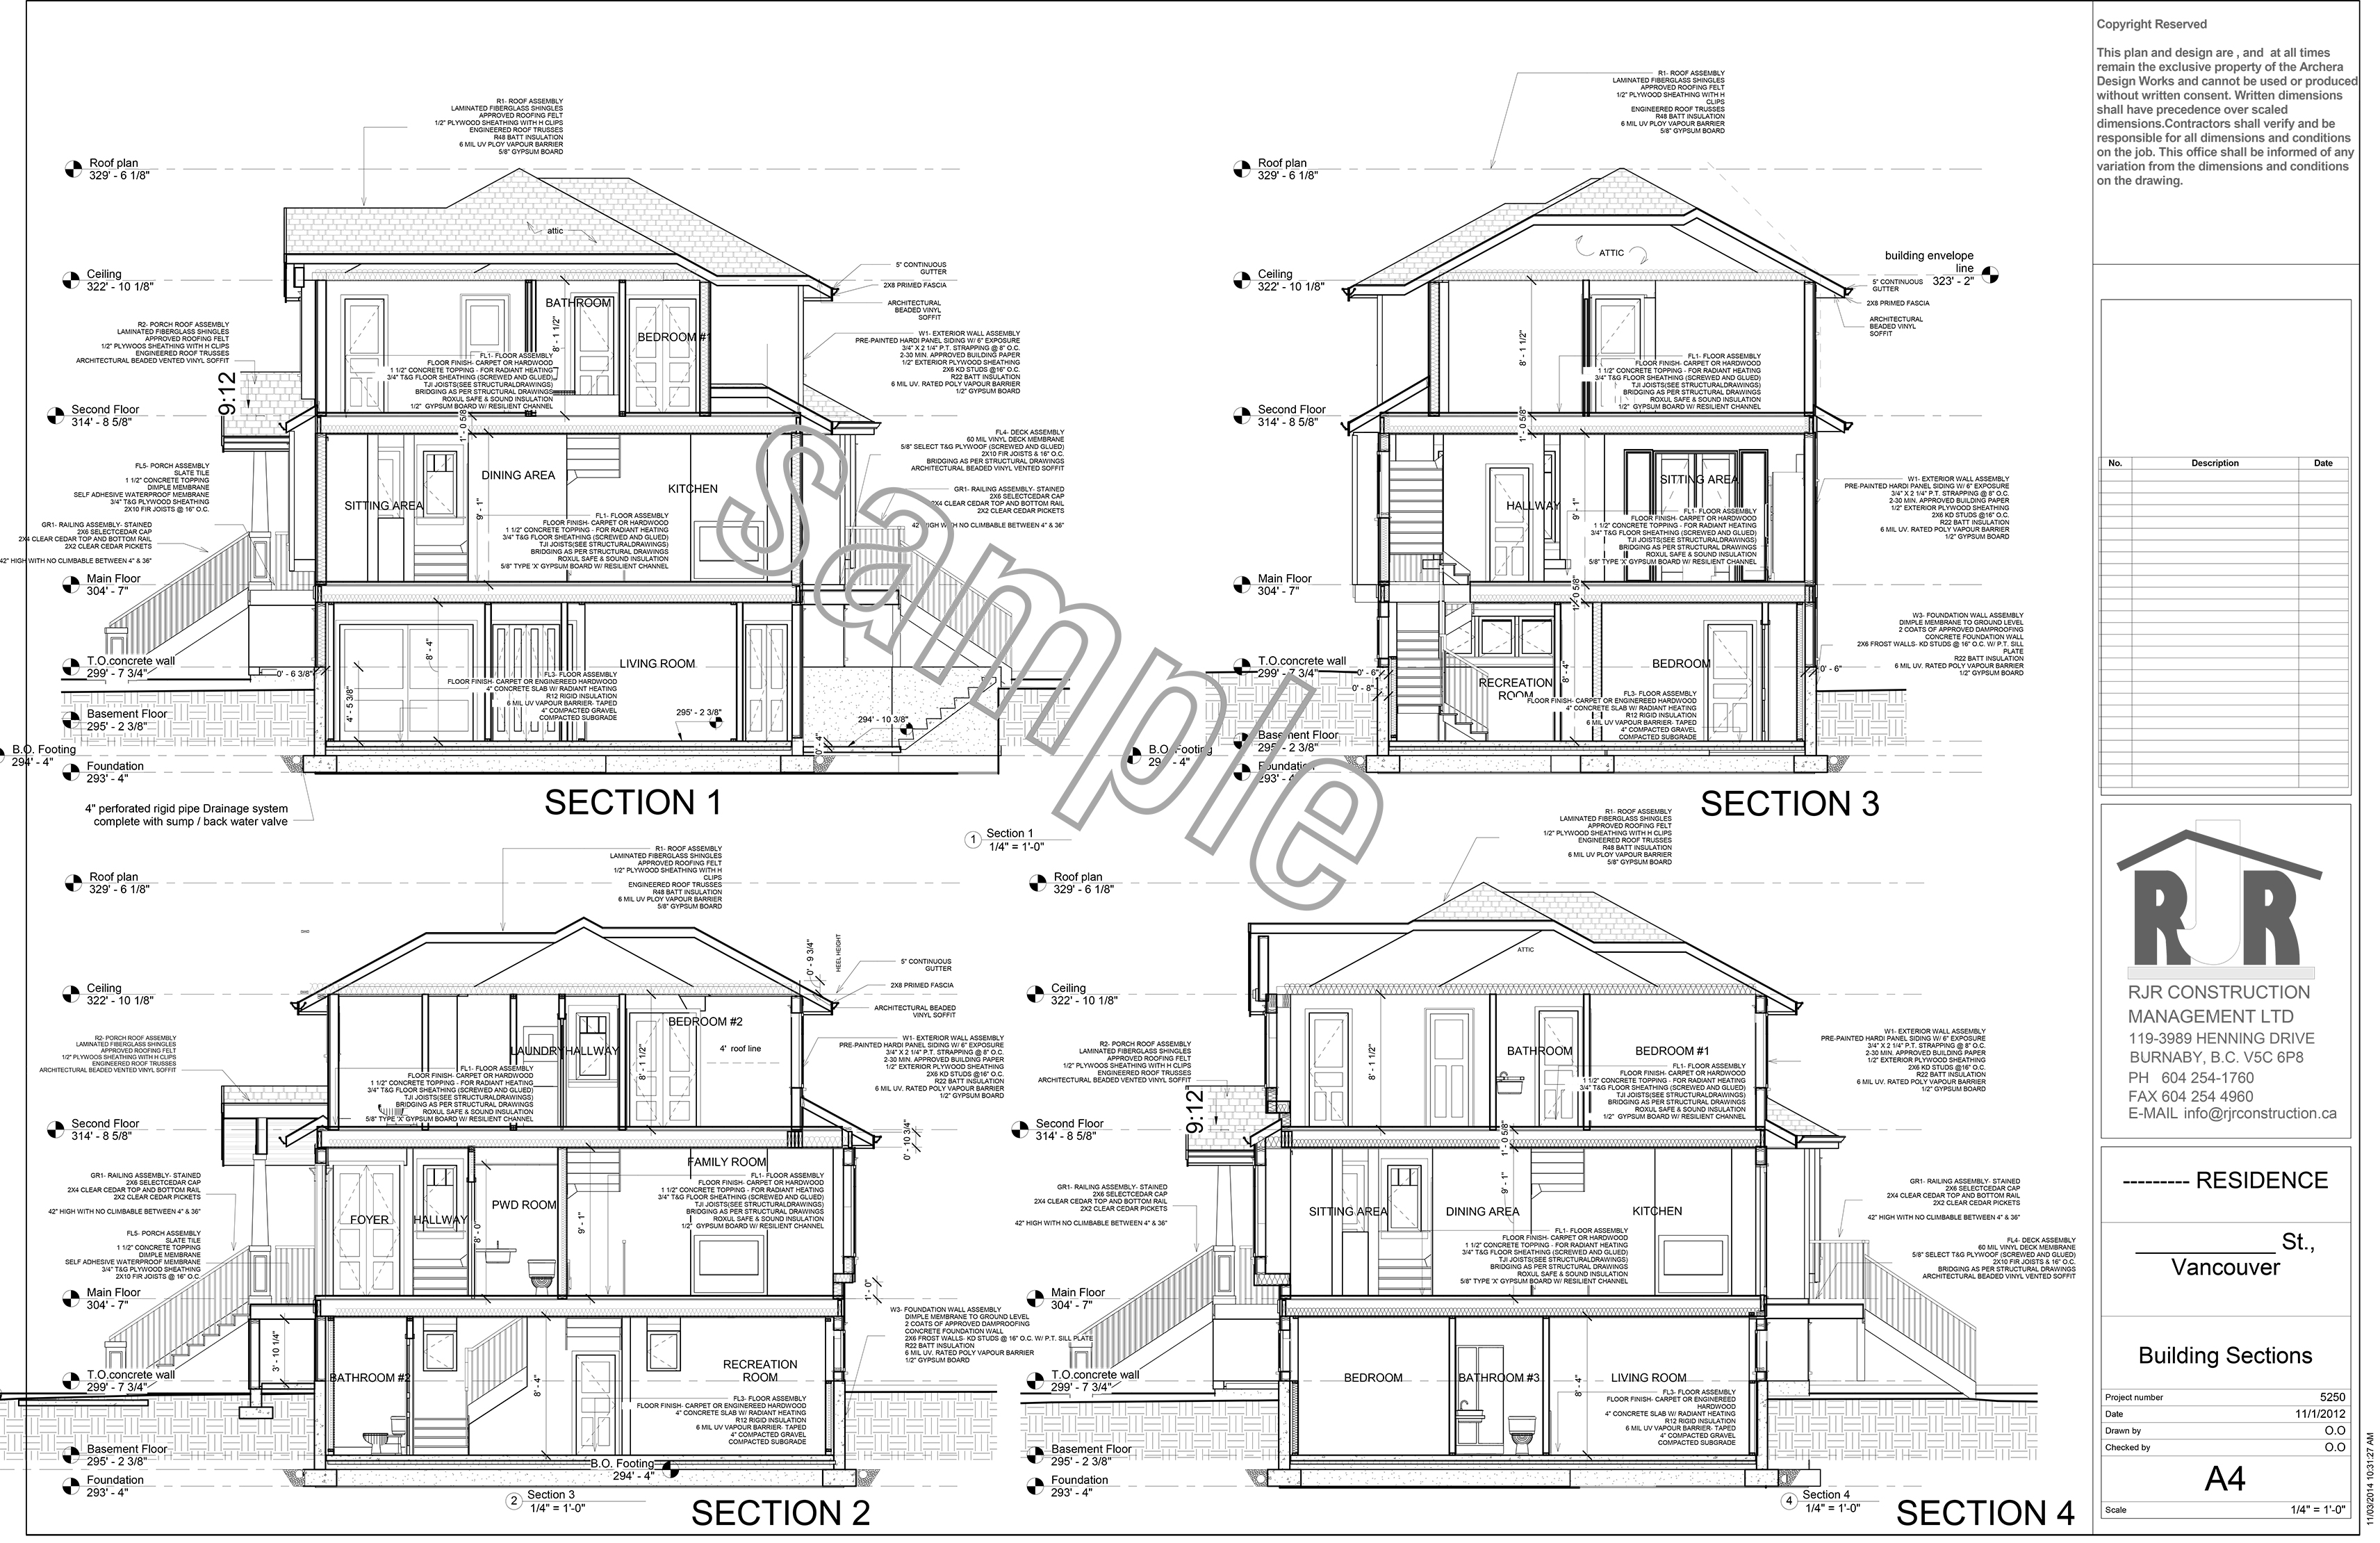 Sample drawings rjr construction group vancouver Residential building plan sample